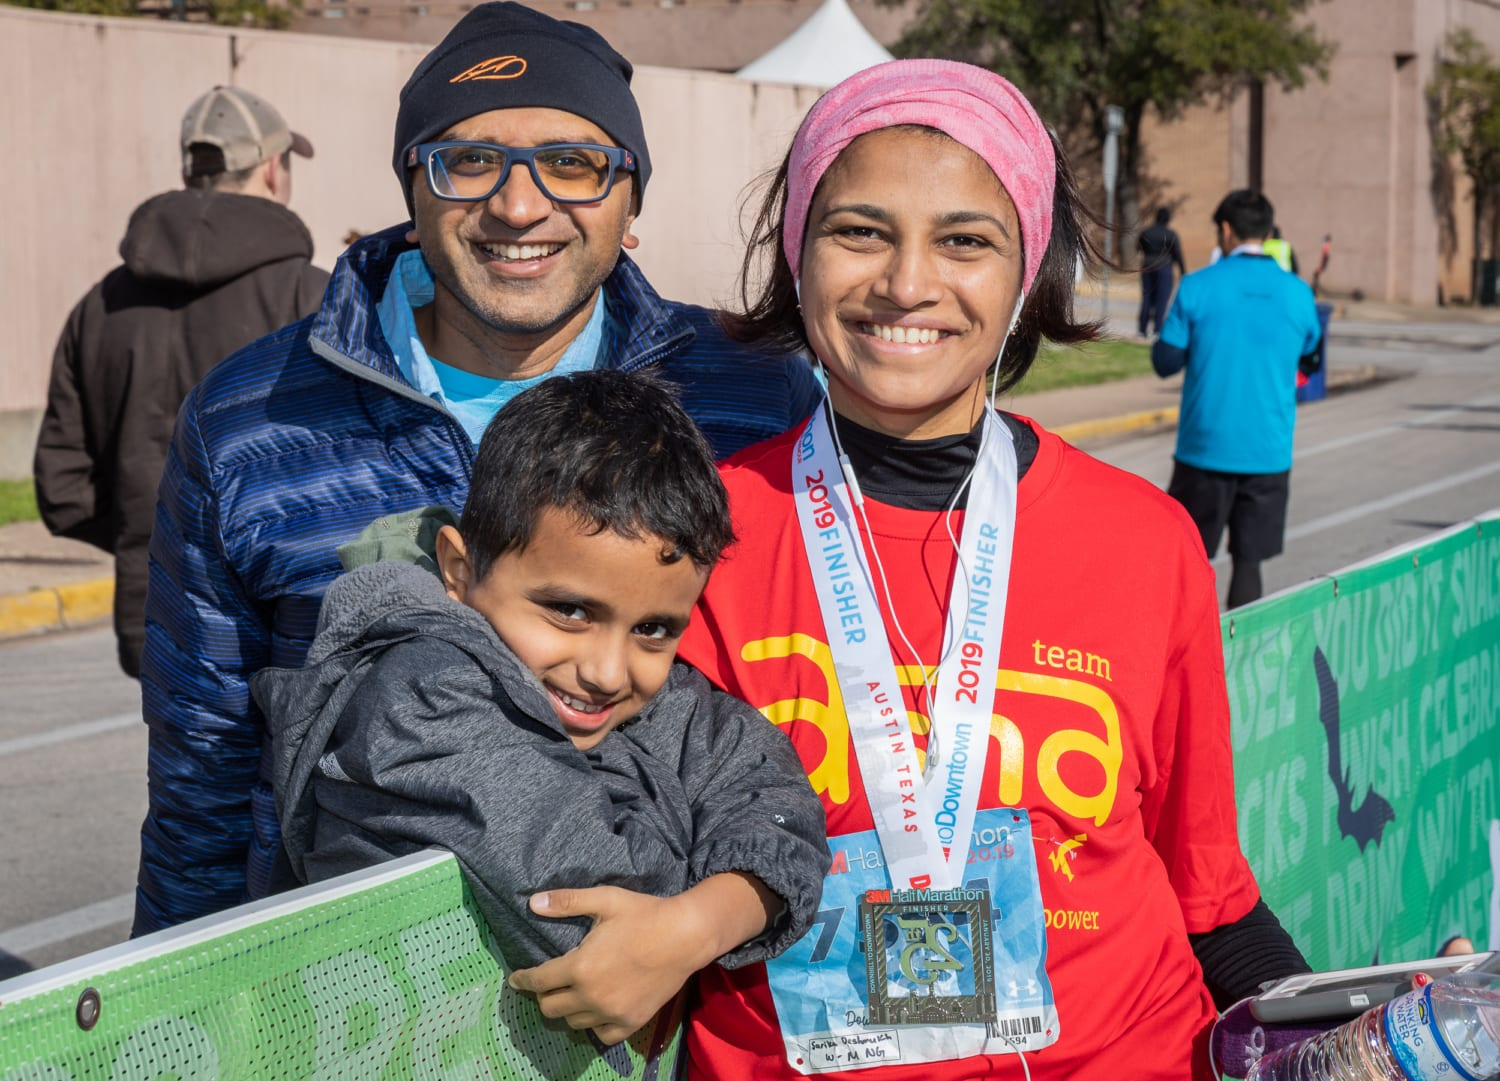 Image of a mom posing with her son and husband at the 2019 3M Half Marathon finish line. Nominate your mom in this blog post for the Mother's Day giveaway!